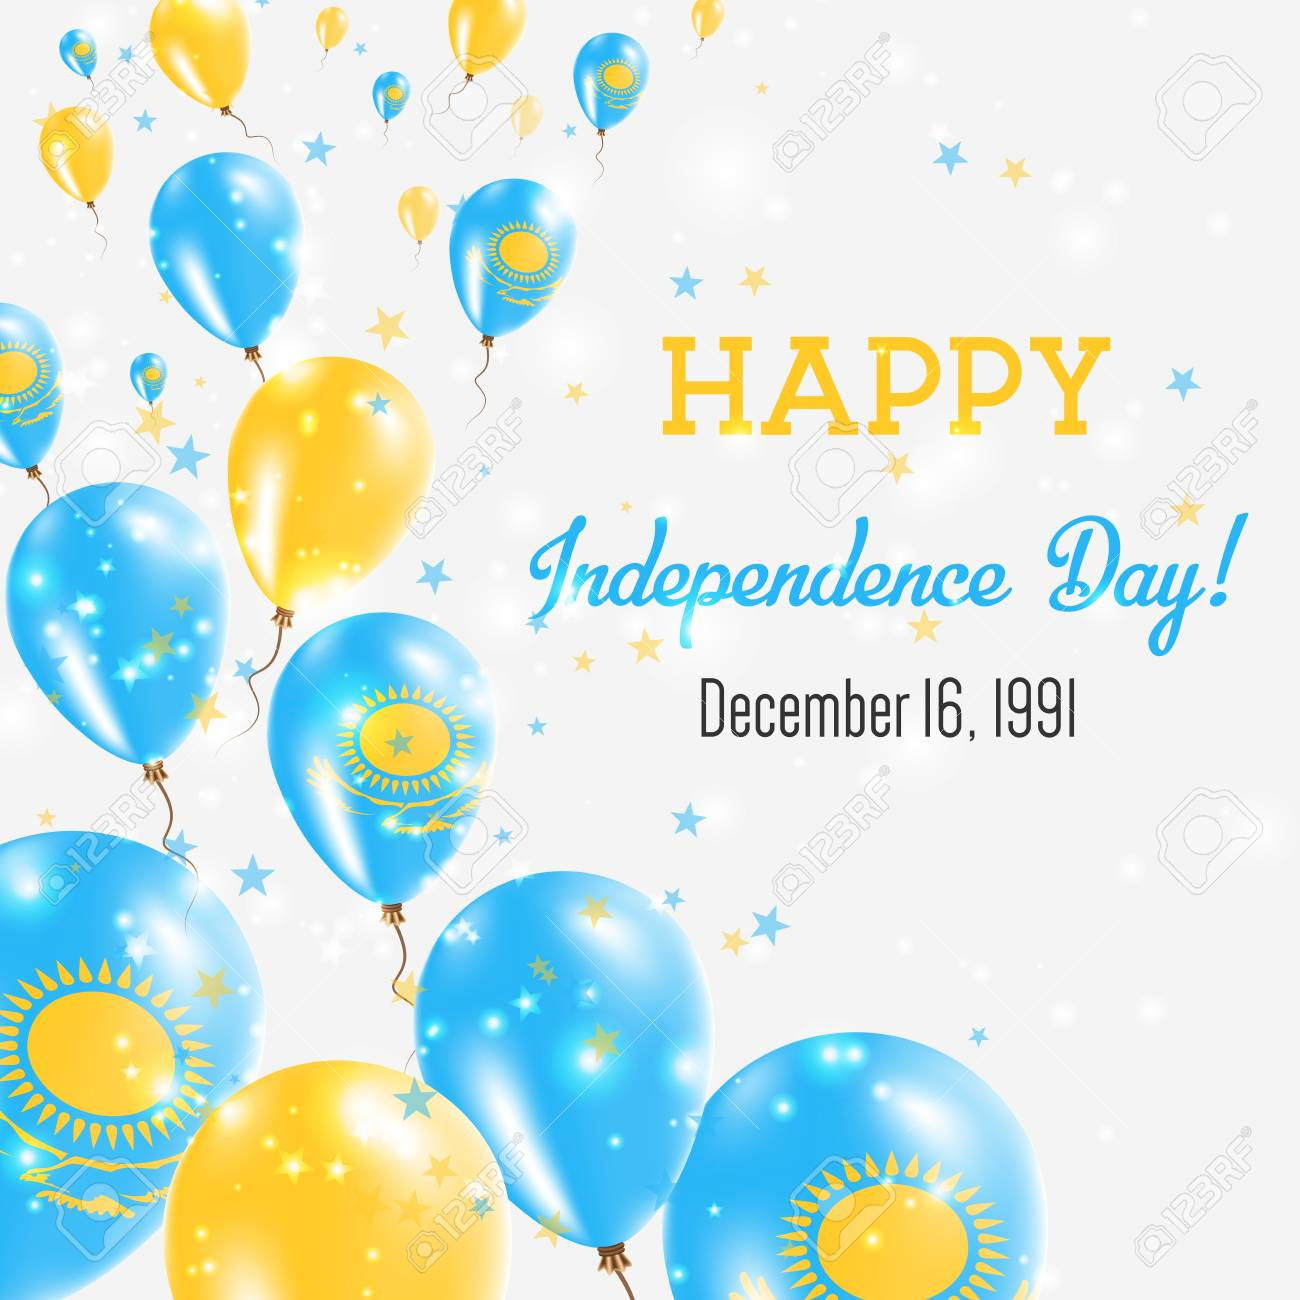 Independence Day.Kazakhstan Independence Day Greeting Card Flying Balloons In